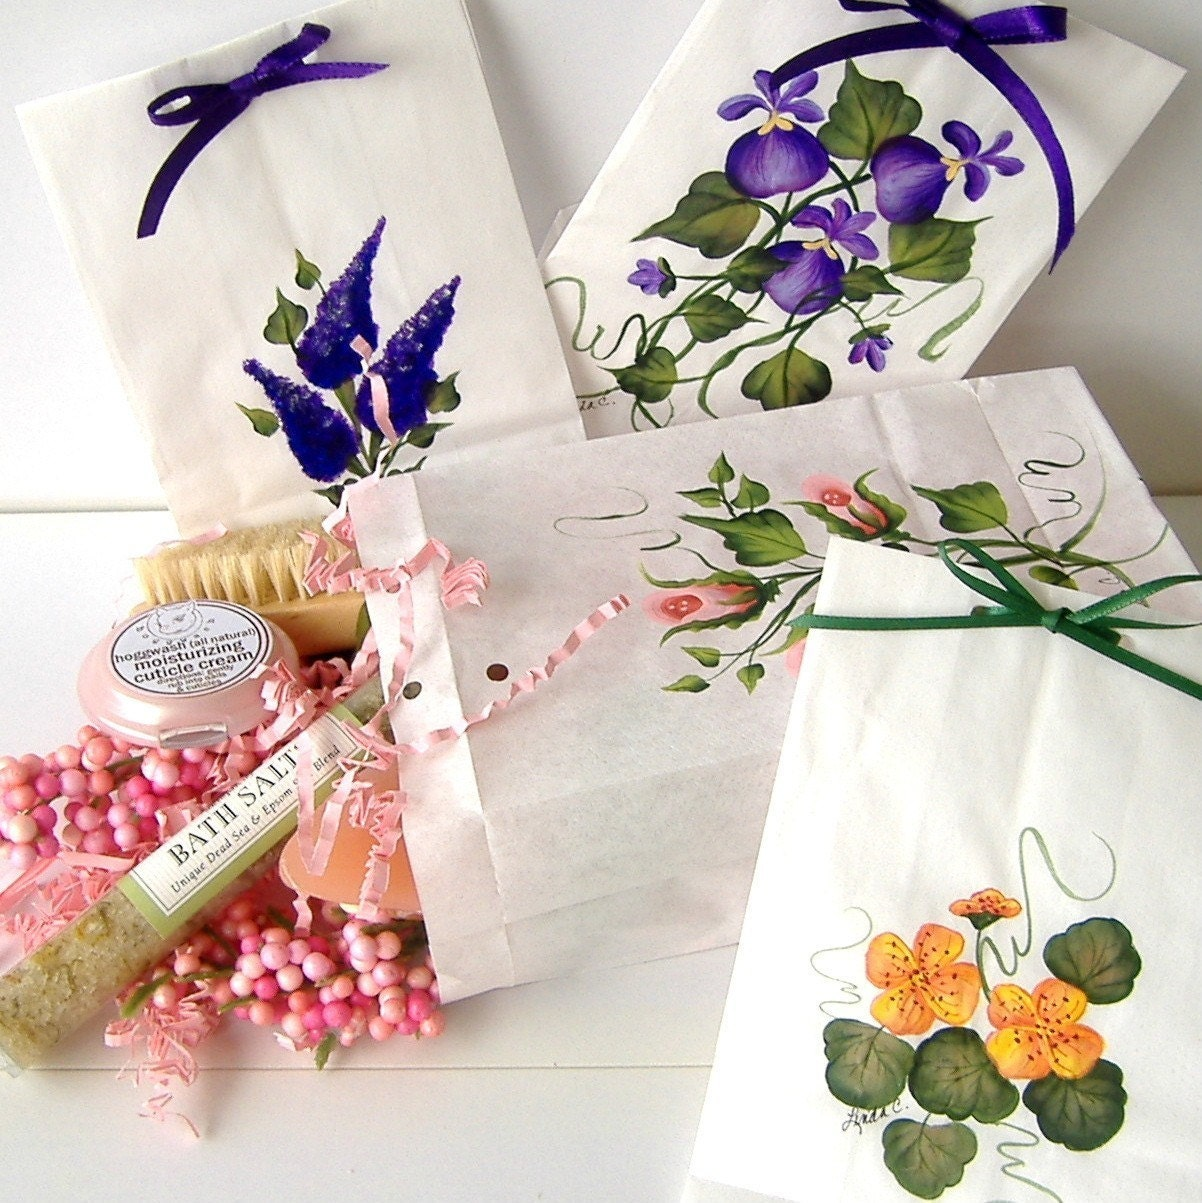 Goodie Bags, Gift Bags, Hostess Bags, Thank You Bags, Set of 4 Handpainted Original